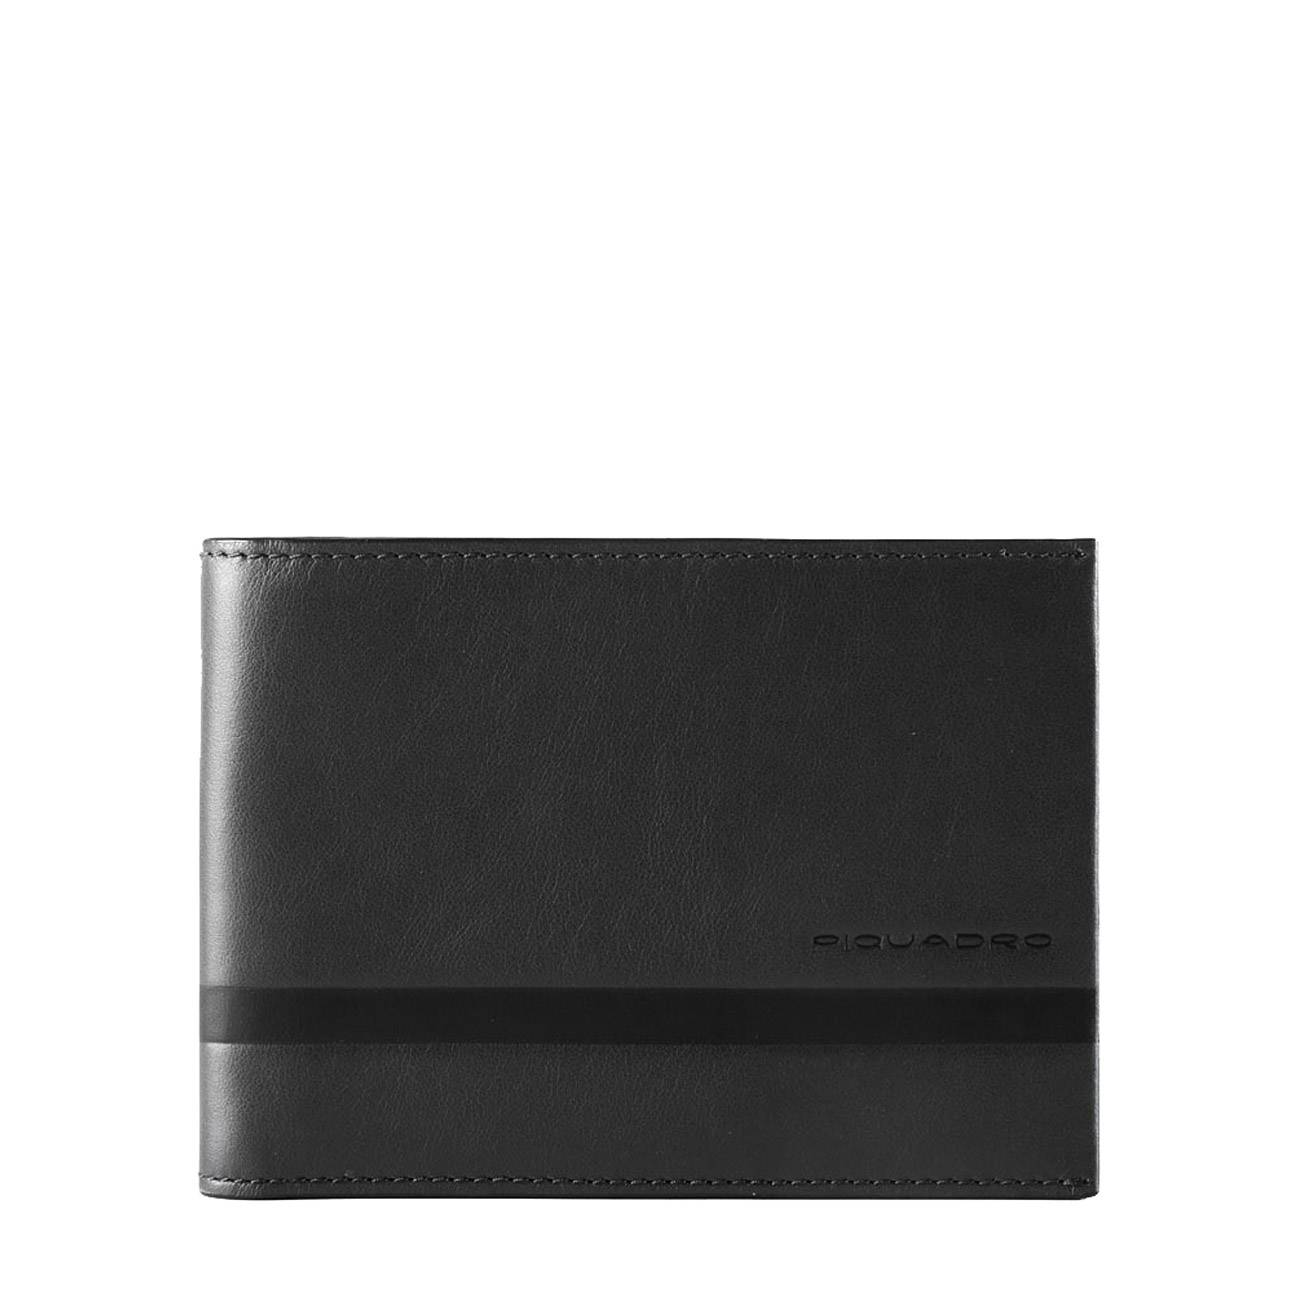 SETEBOS WALLET WITH CREDIT CARD